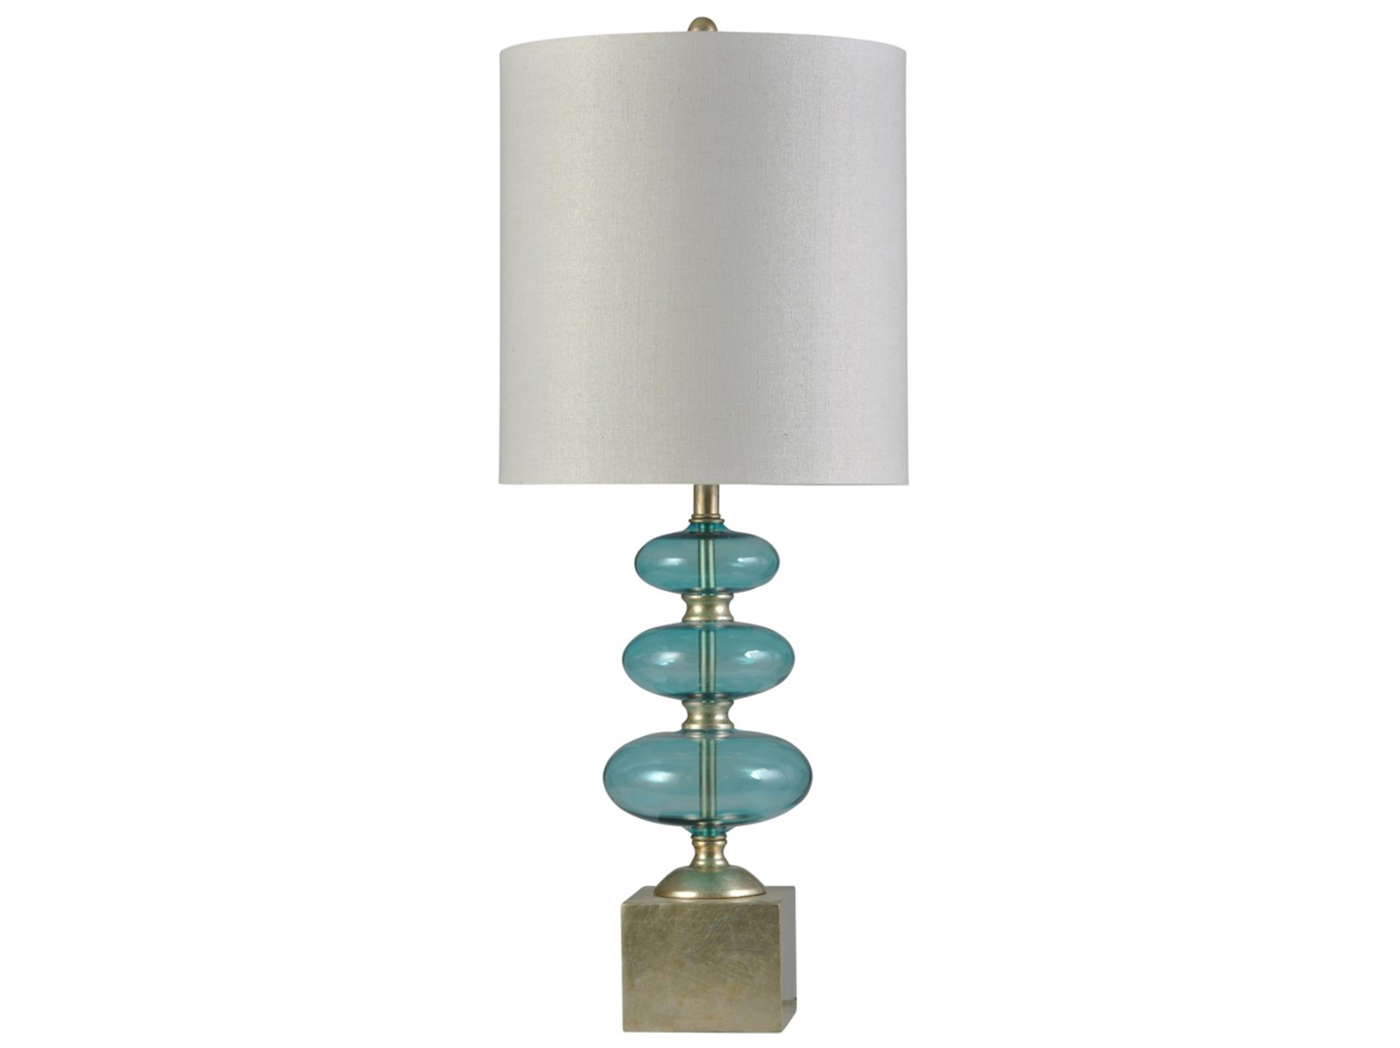 Decor accents lamps steinhafels blue glass bubbles table lamp 37h aloadofball Gallery